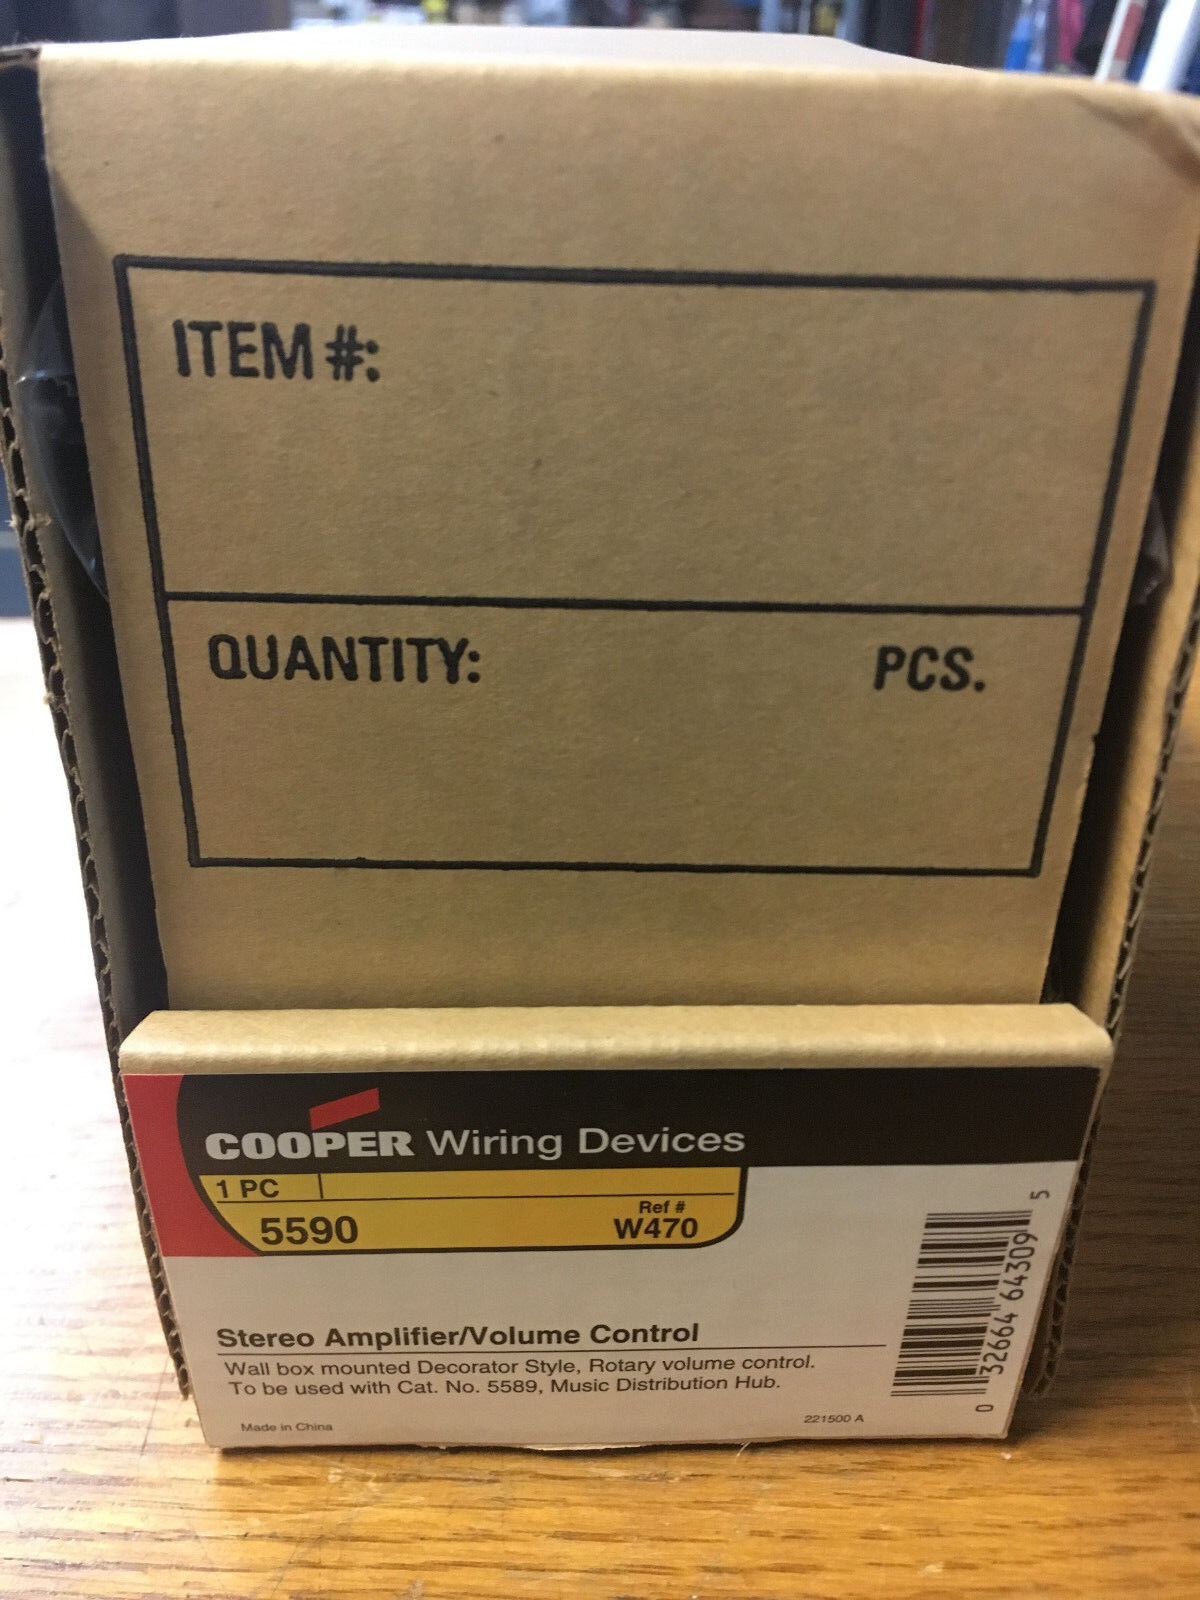 cooper wiring devices 5590 stereo amplifier volume control see pics rh ebay com Cooper Wiring Devices USB Cooper Wiring Devices Wall Plate